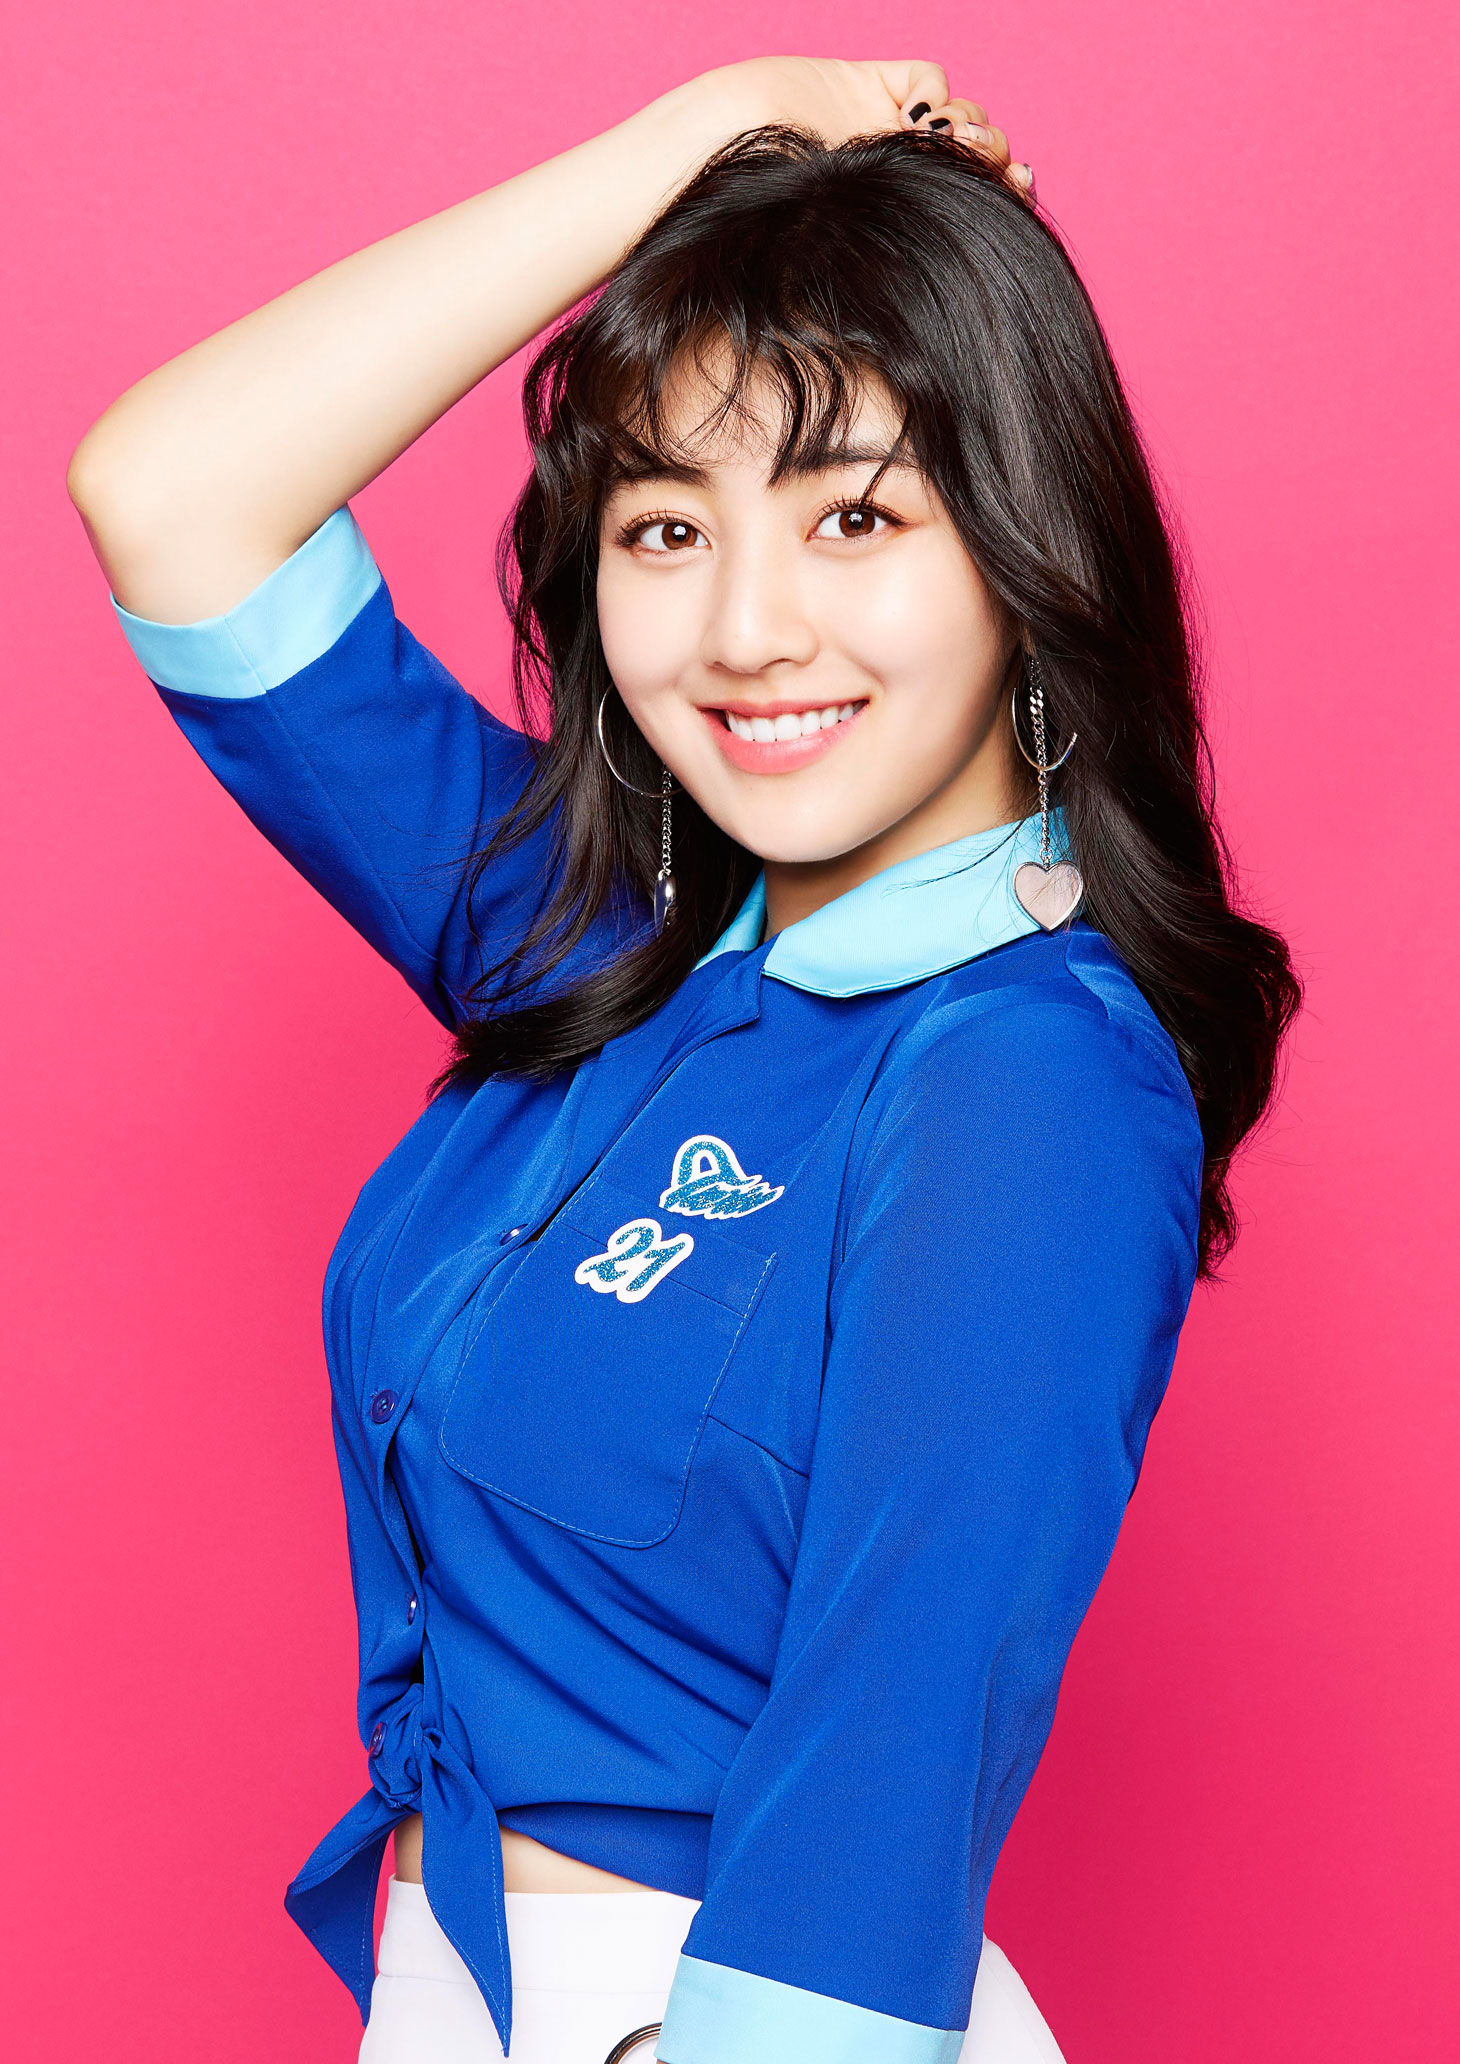 One More Time Twice Asiachan Kpop Image Board